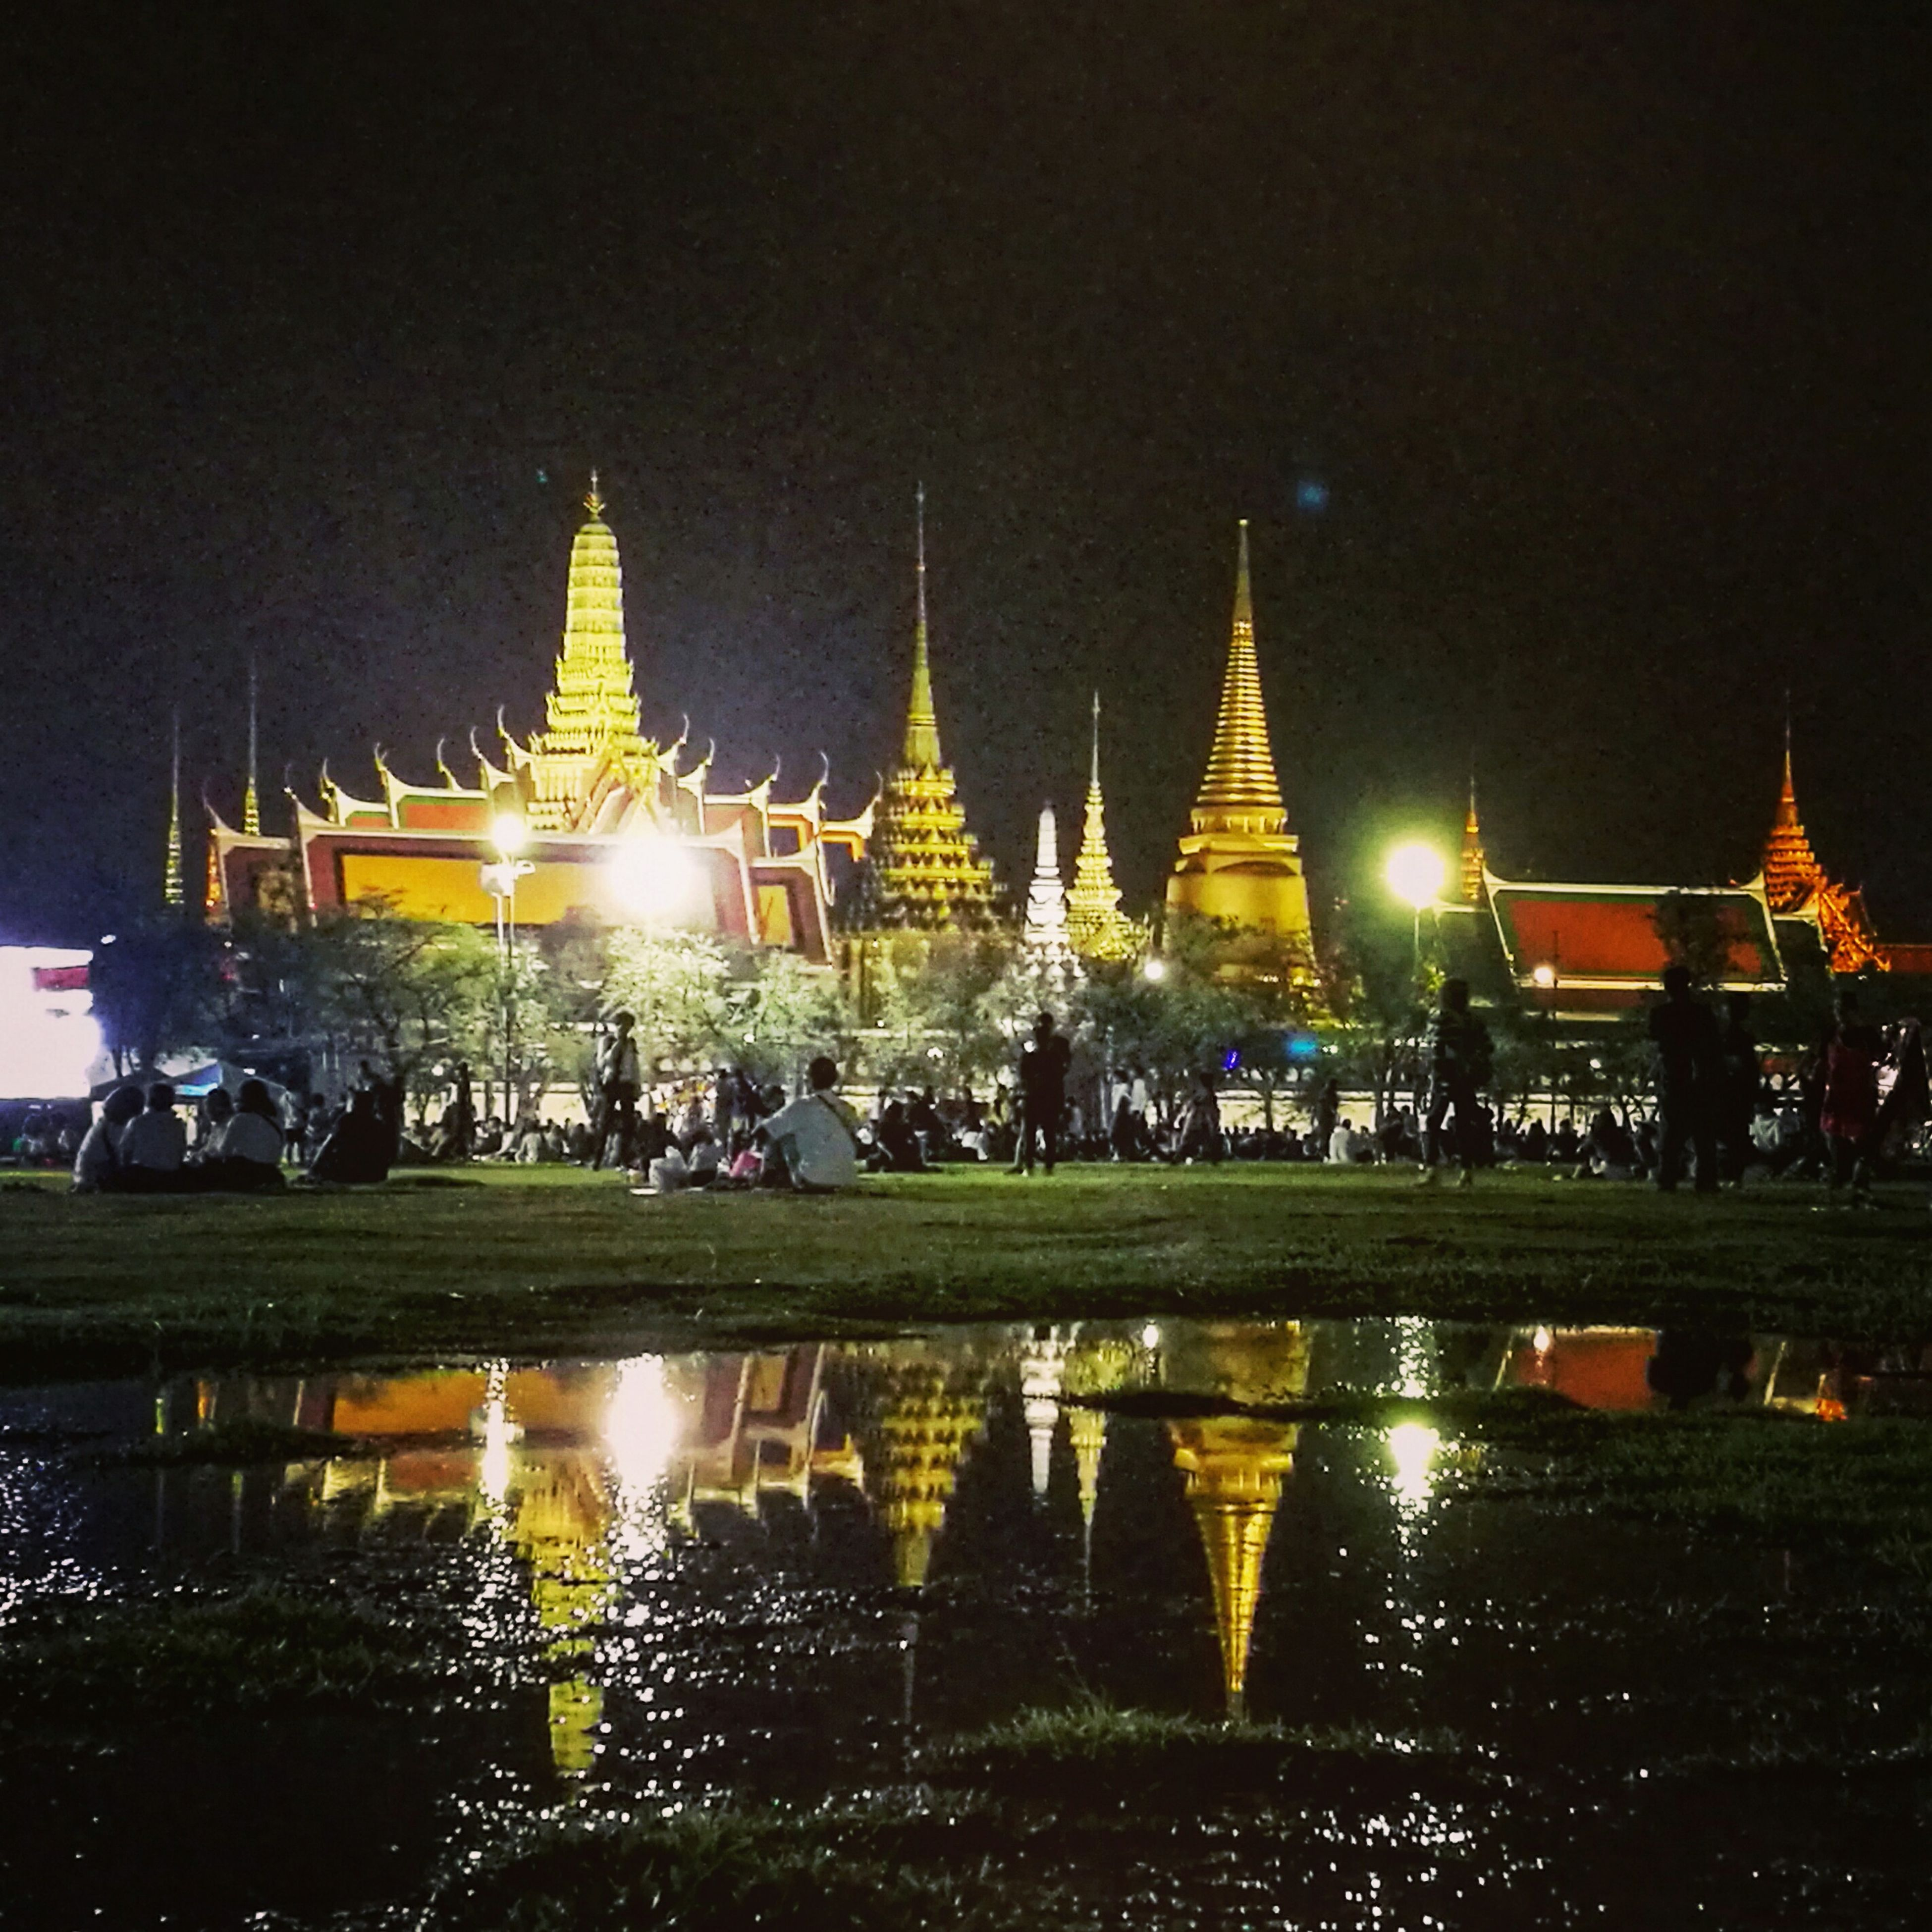 Thailand King Palace ROYEL Litght Temple - Building City Mobile Photography